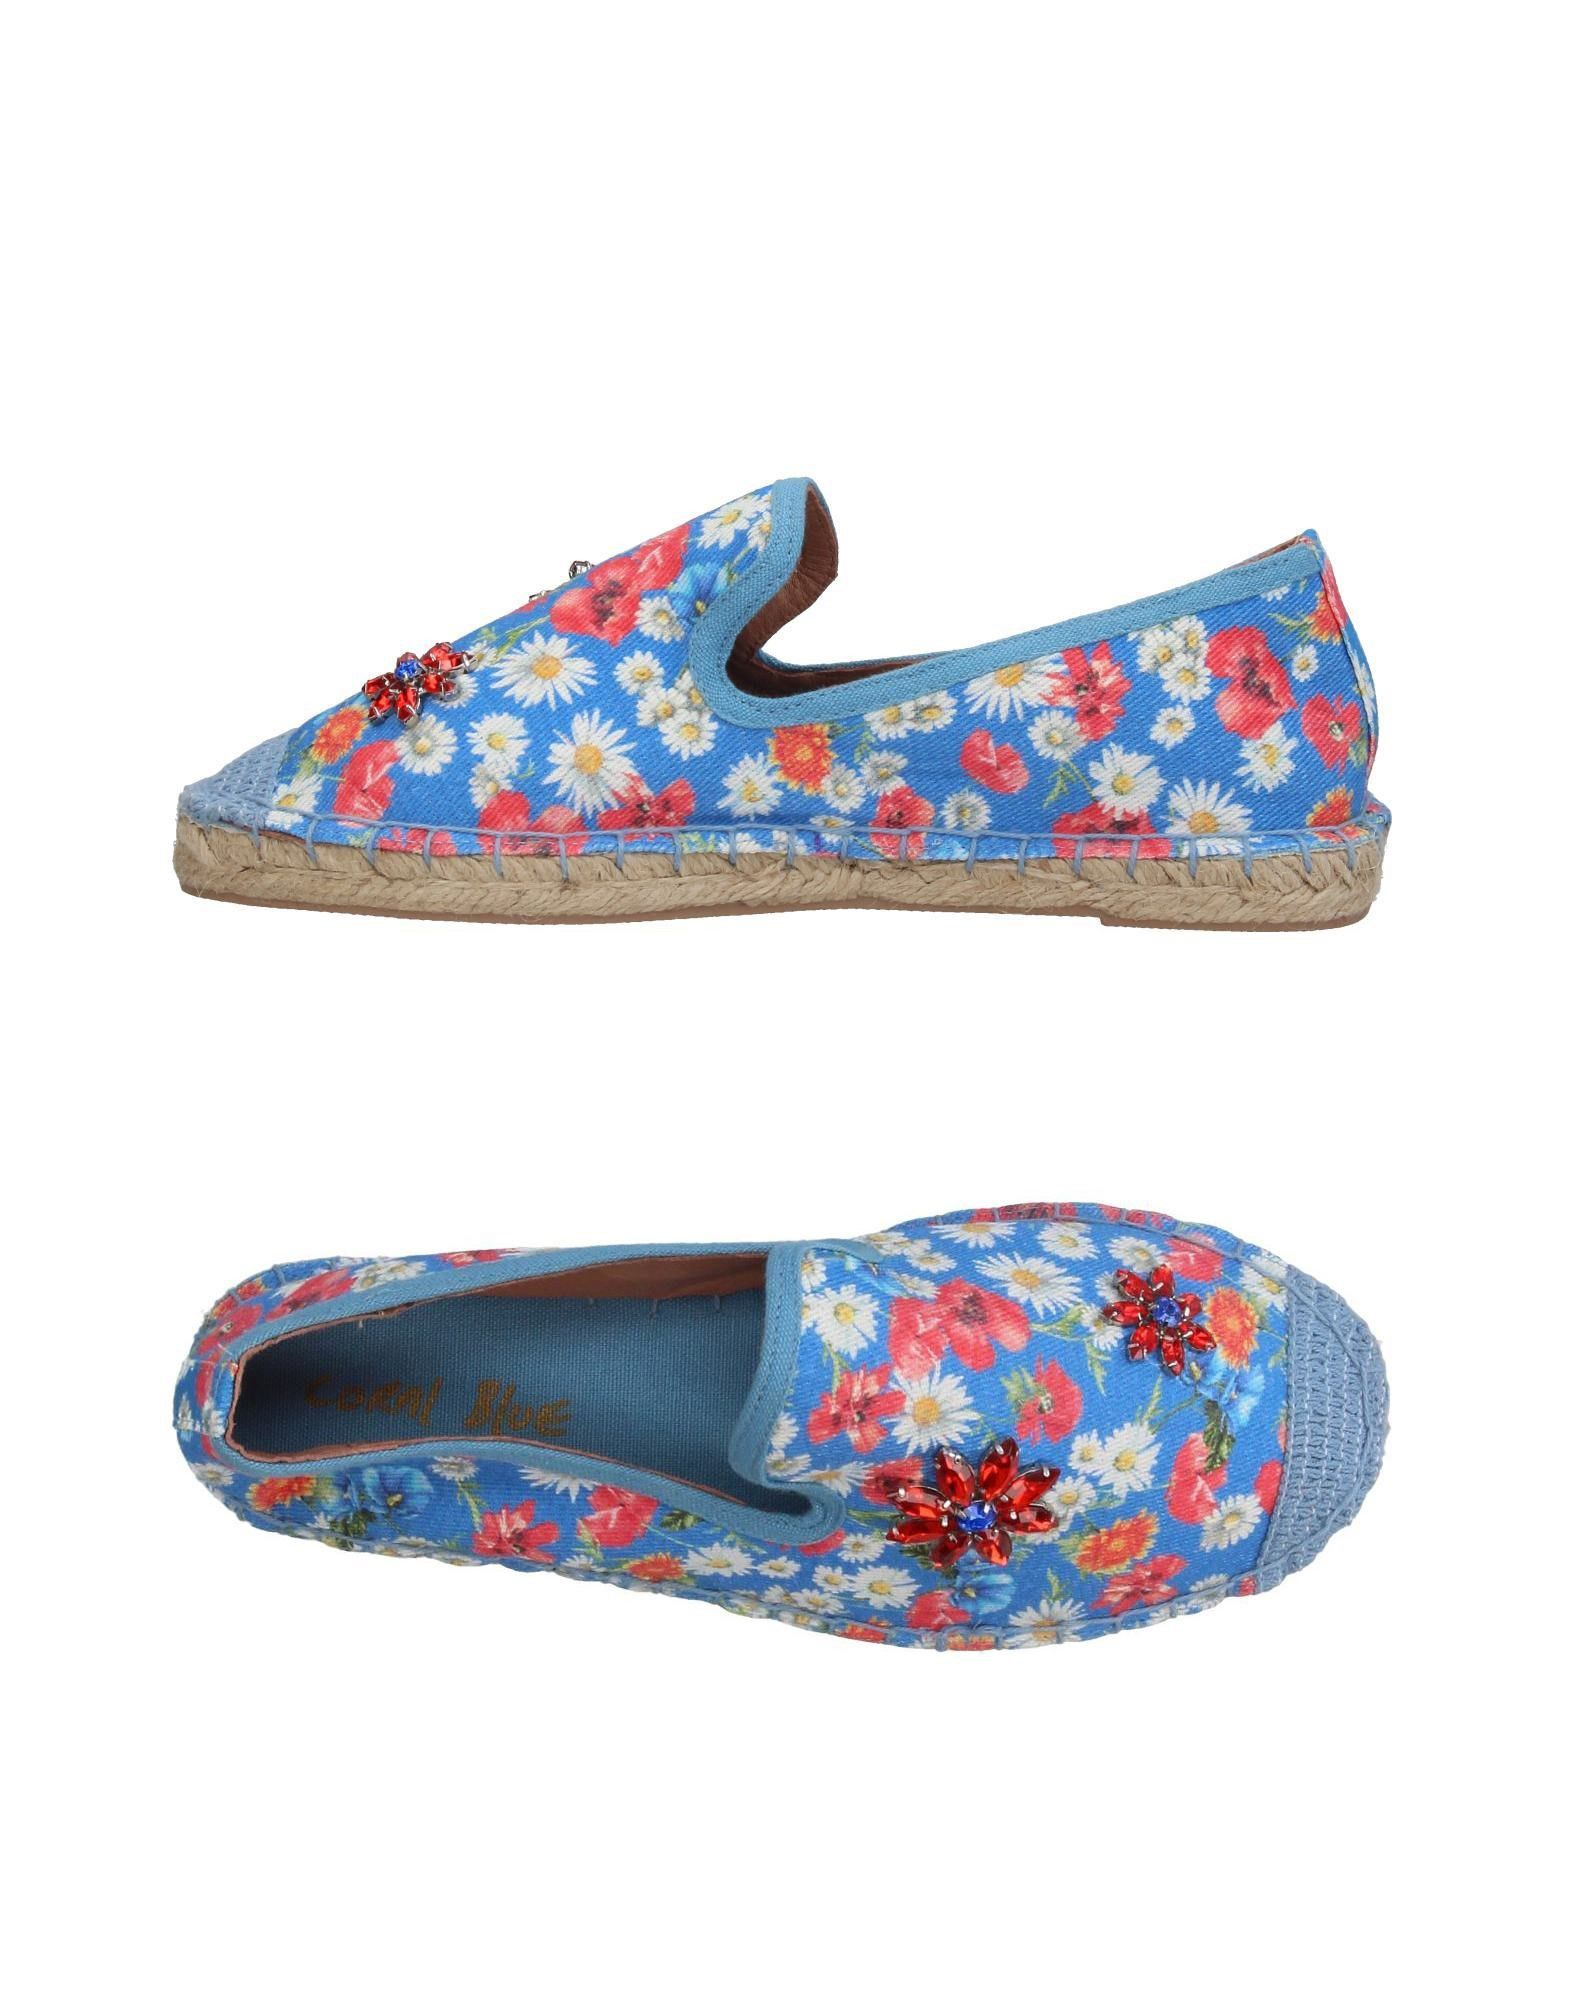 Coral BlueEspadrilles - turquoise dN847AERf